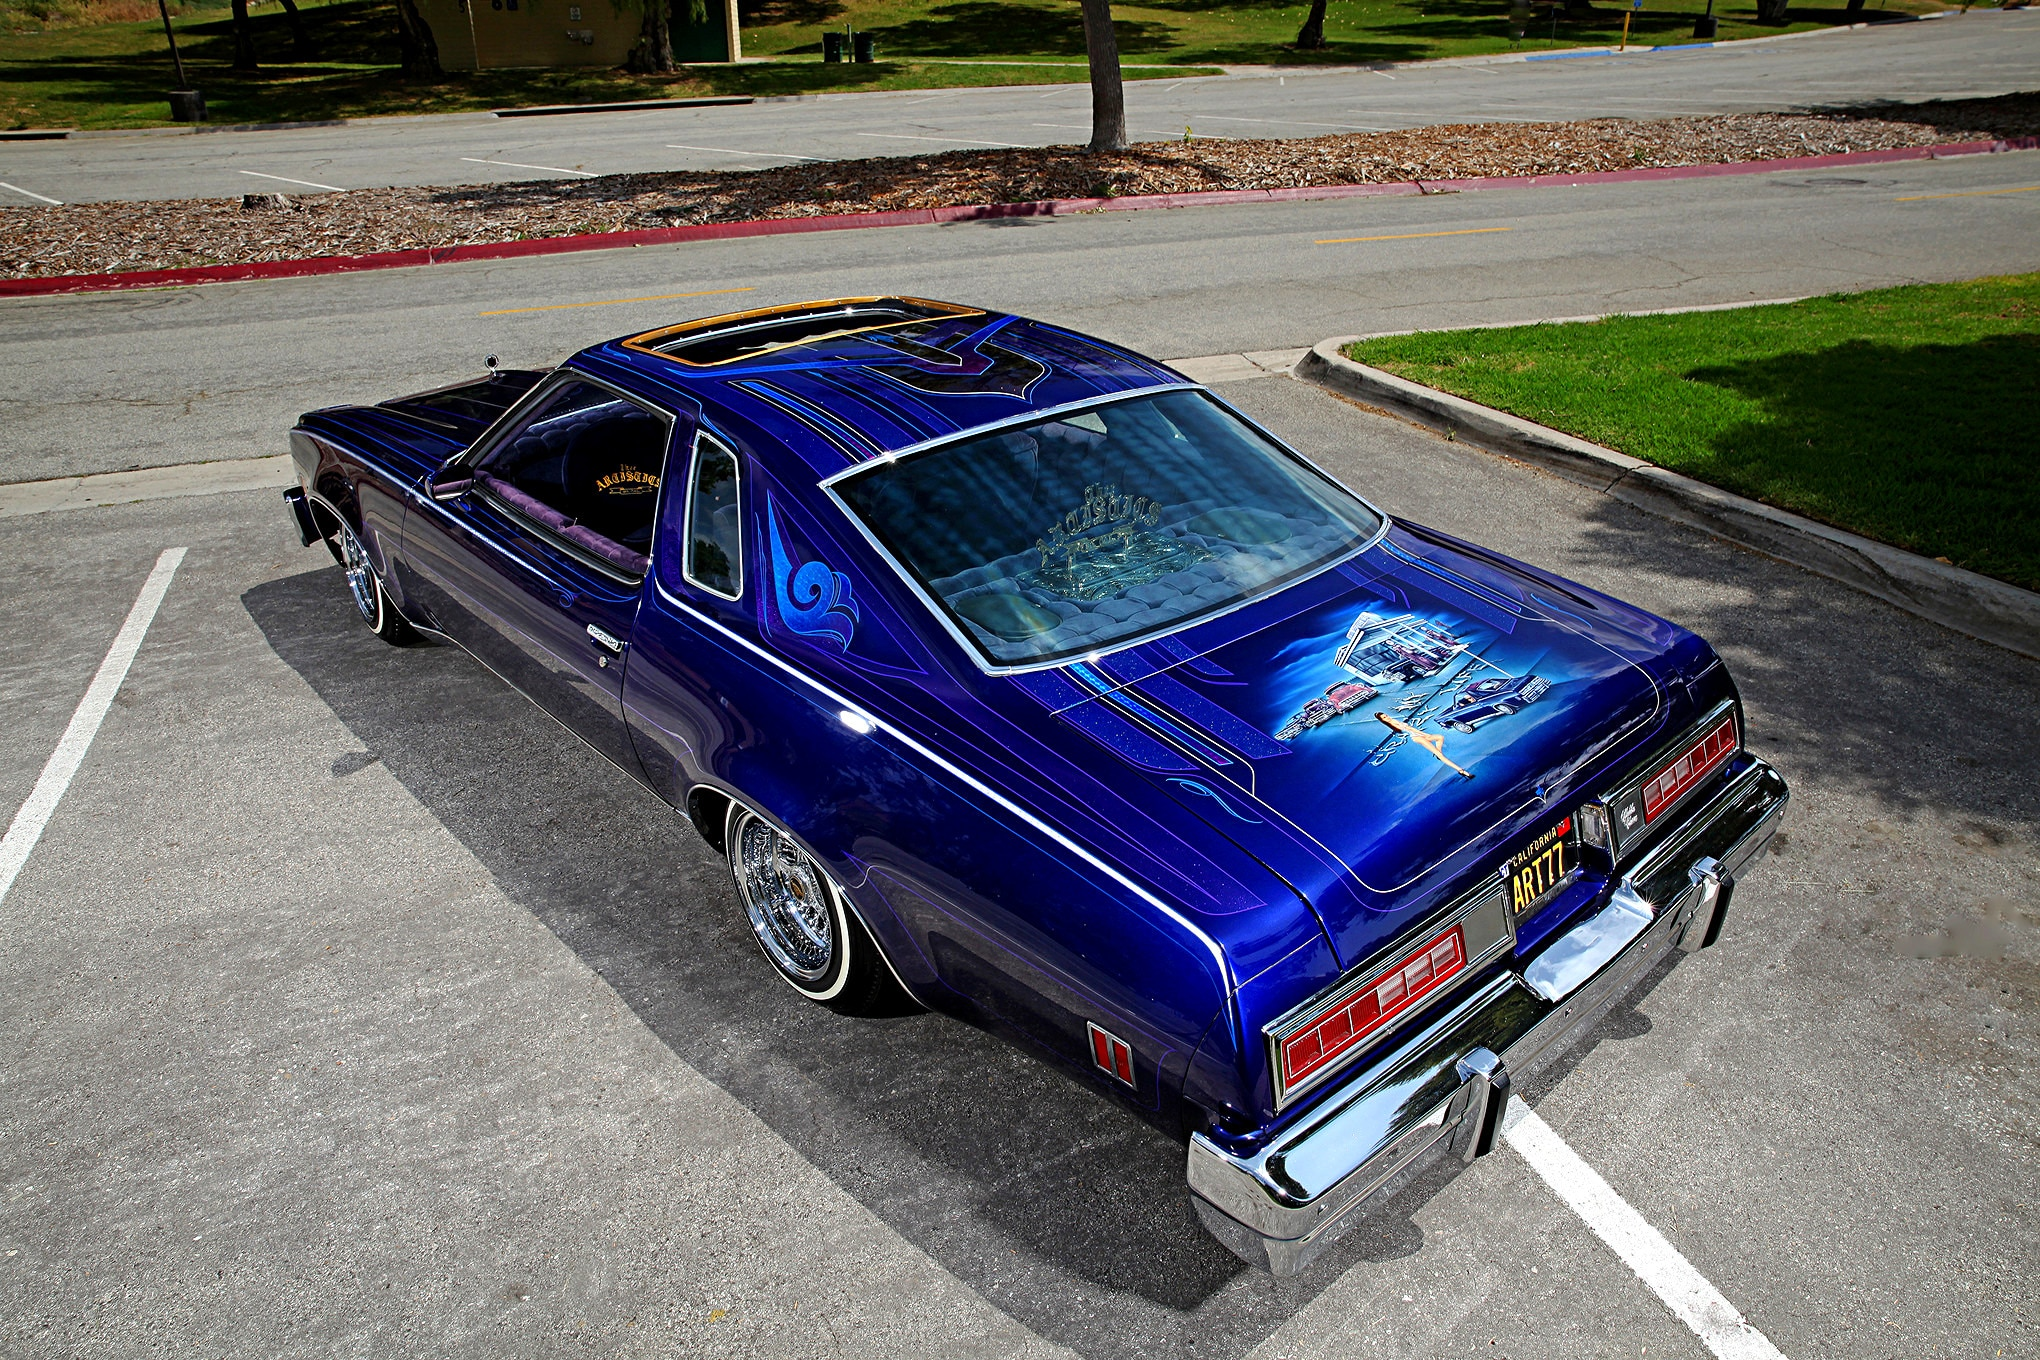 1977 Chevrolet Malibu Classic Top View Lowrider